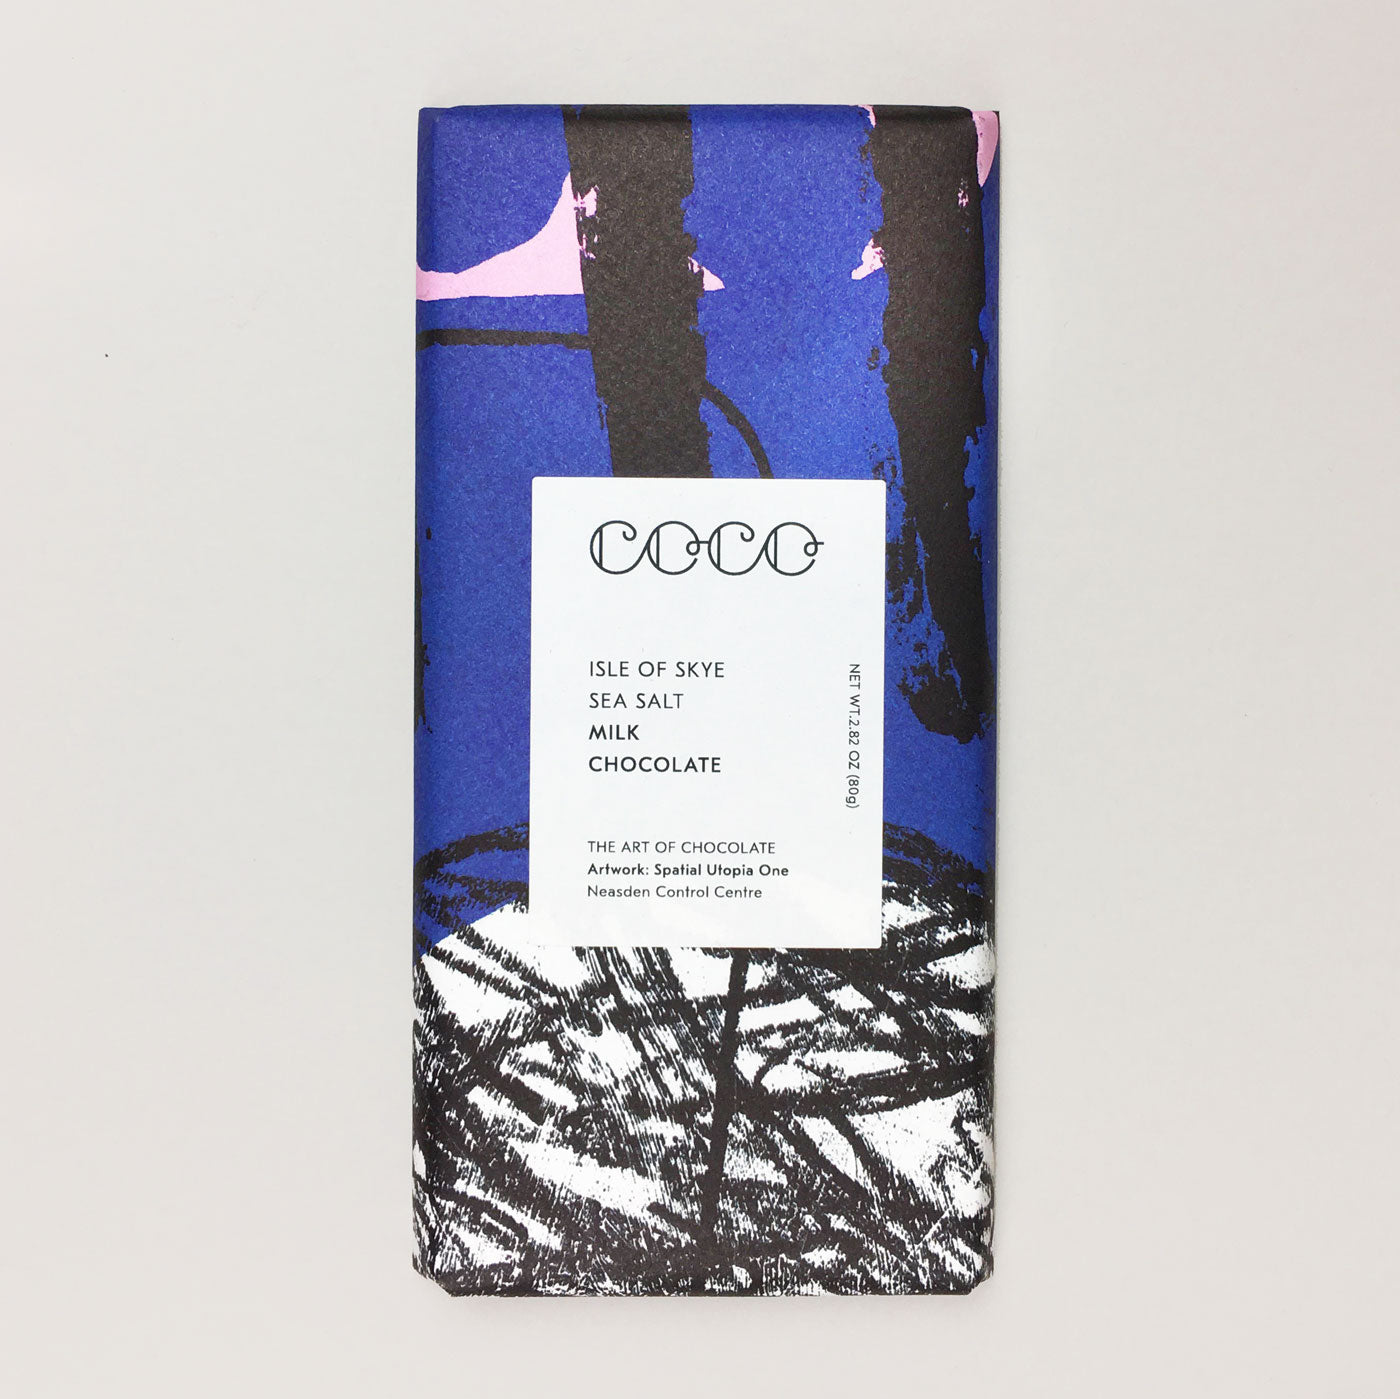 Coco Chocolatier - Isle Of Skye Sea Salt (Milk)